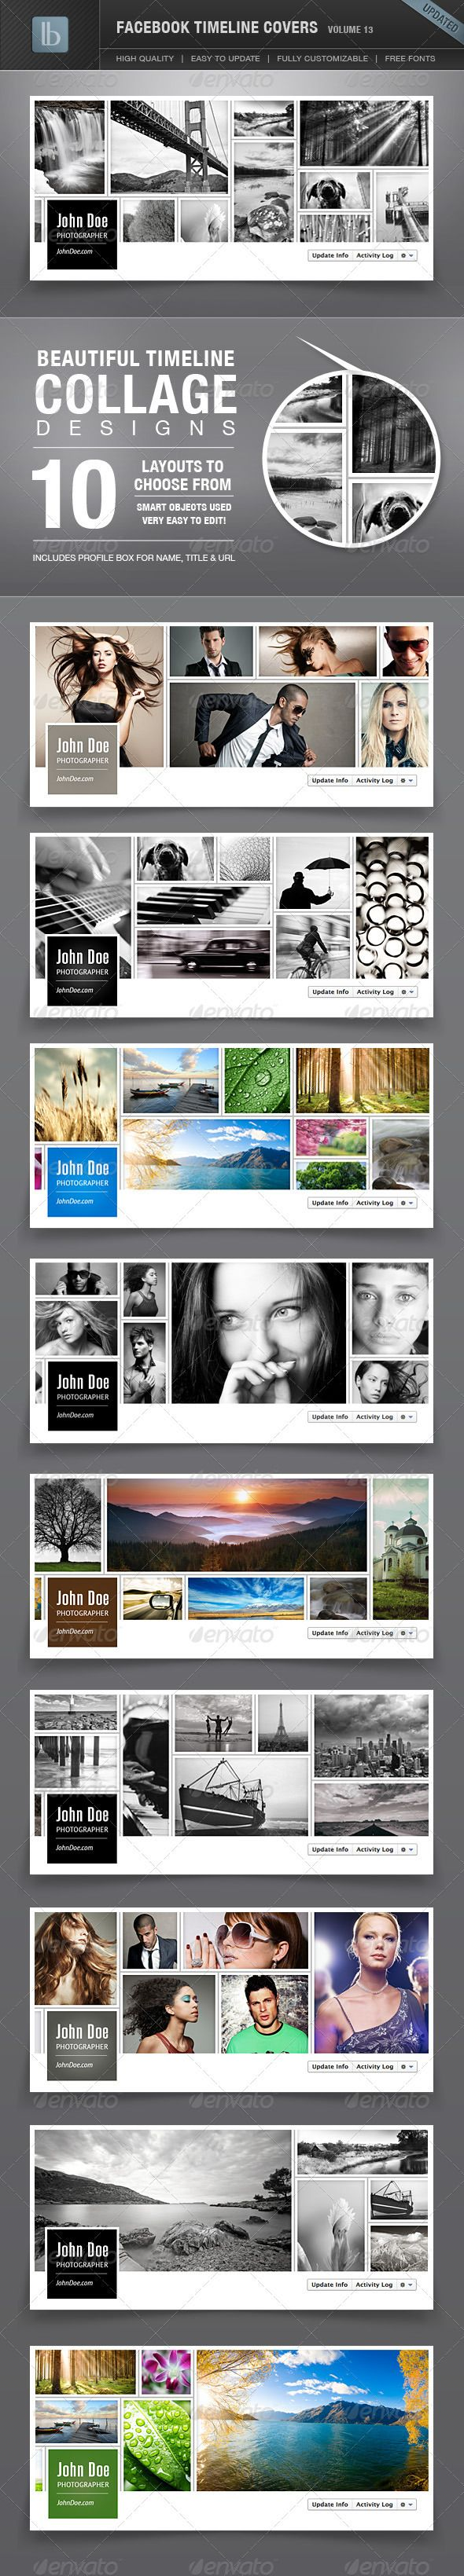 Facebook Timeline Covers | Volume 13 - GraphicRiver Item for Sale - could also work on albums